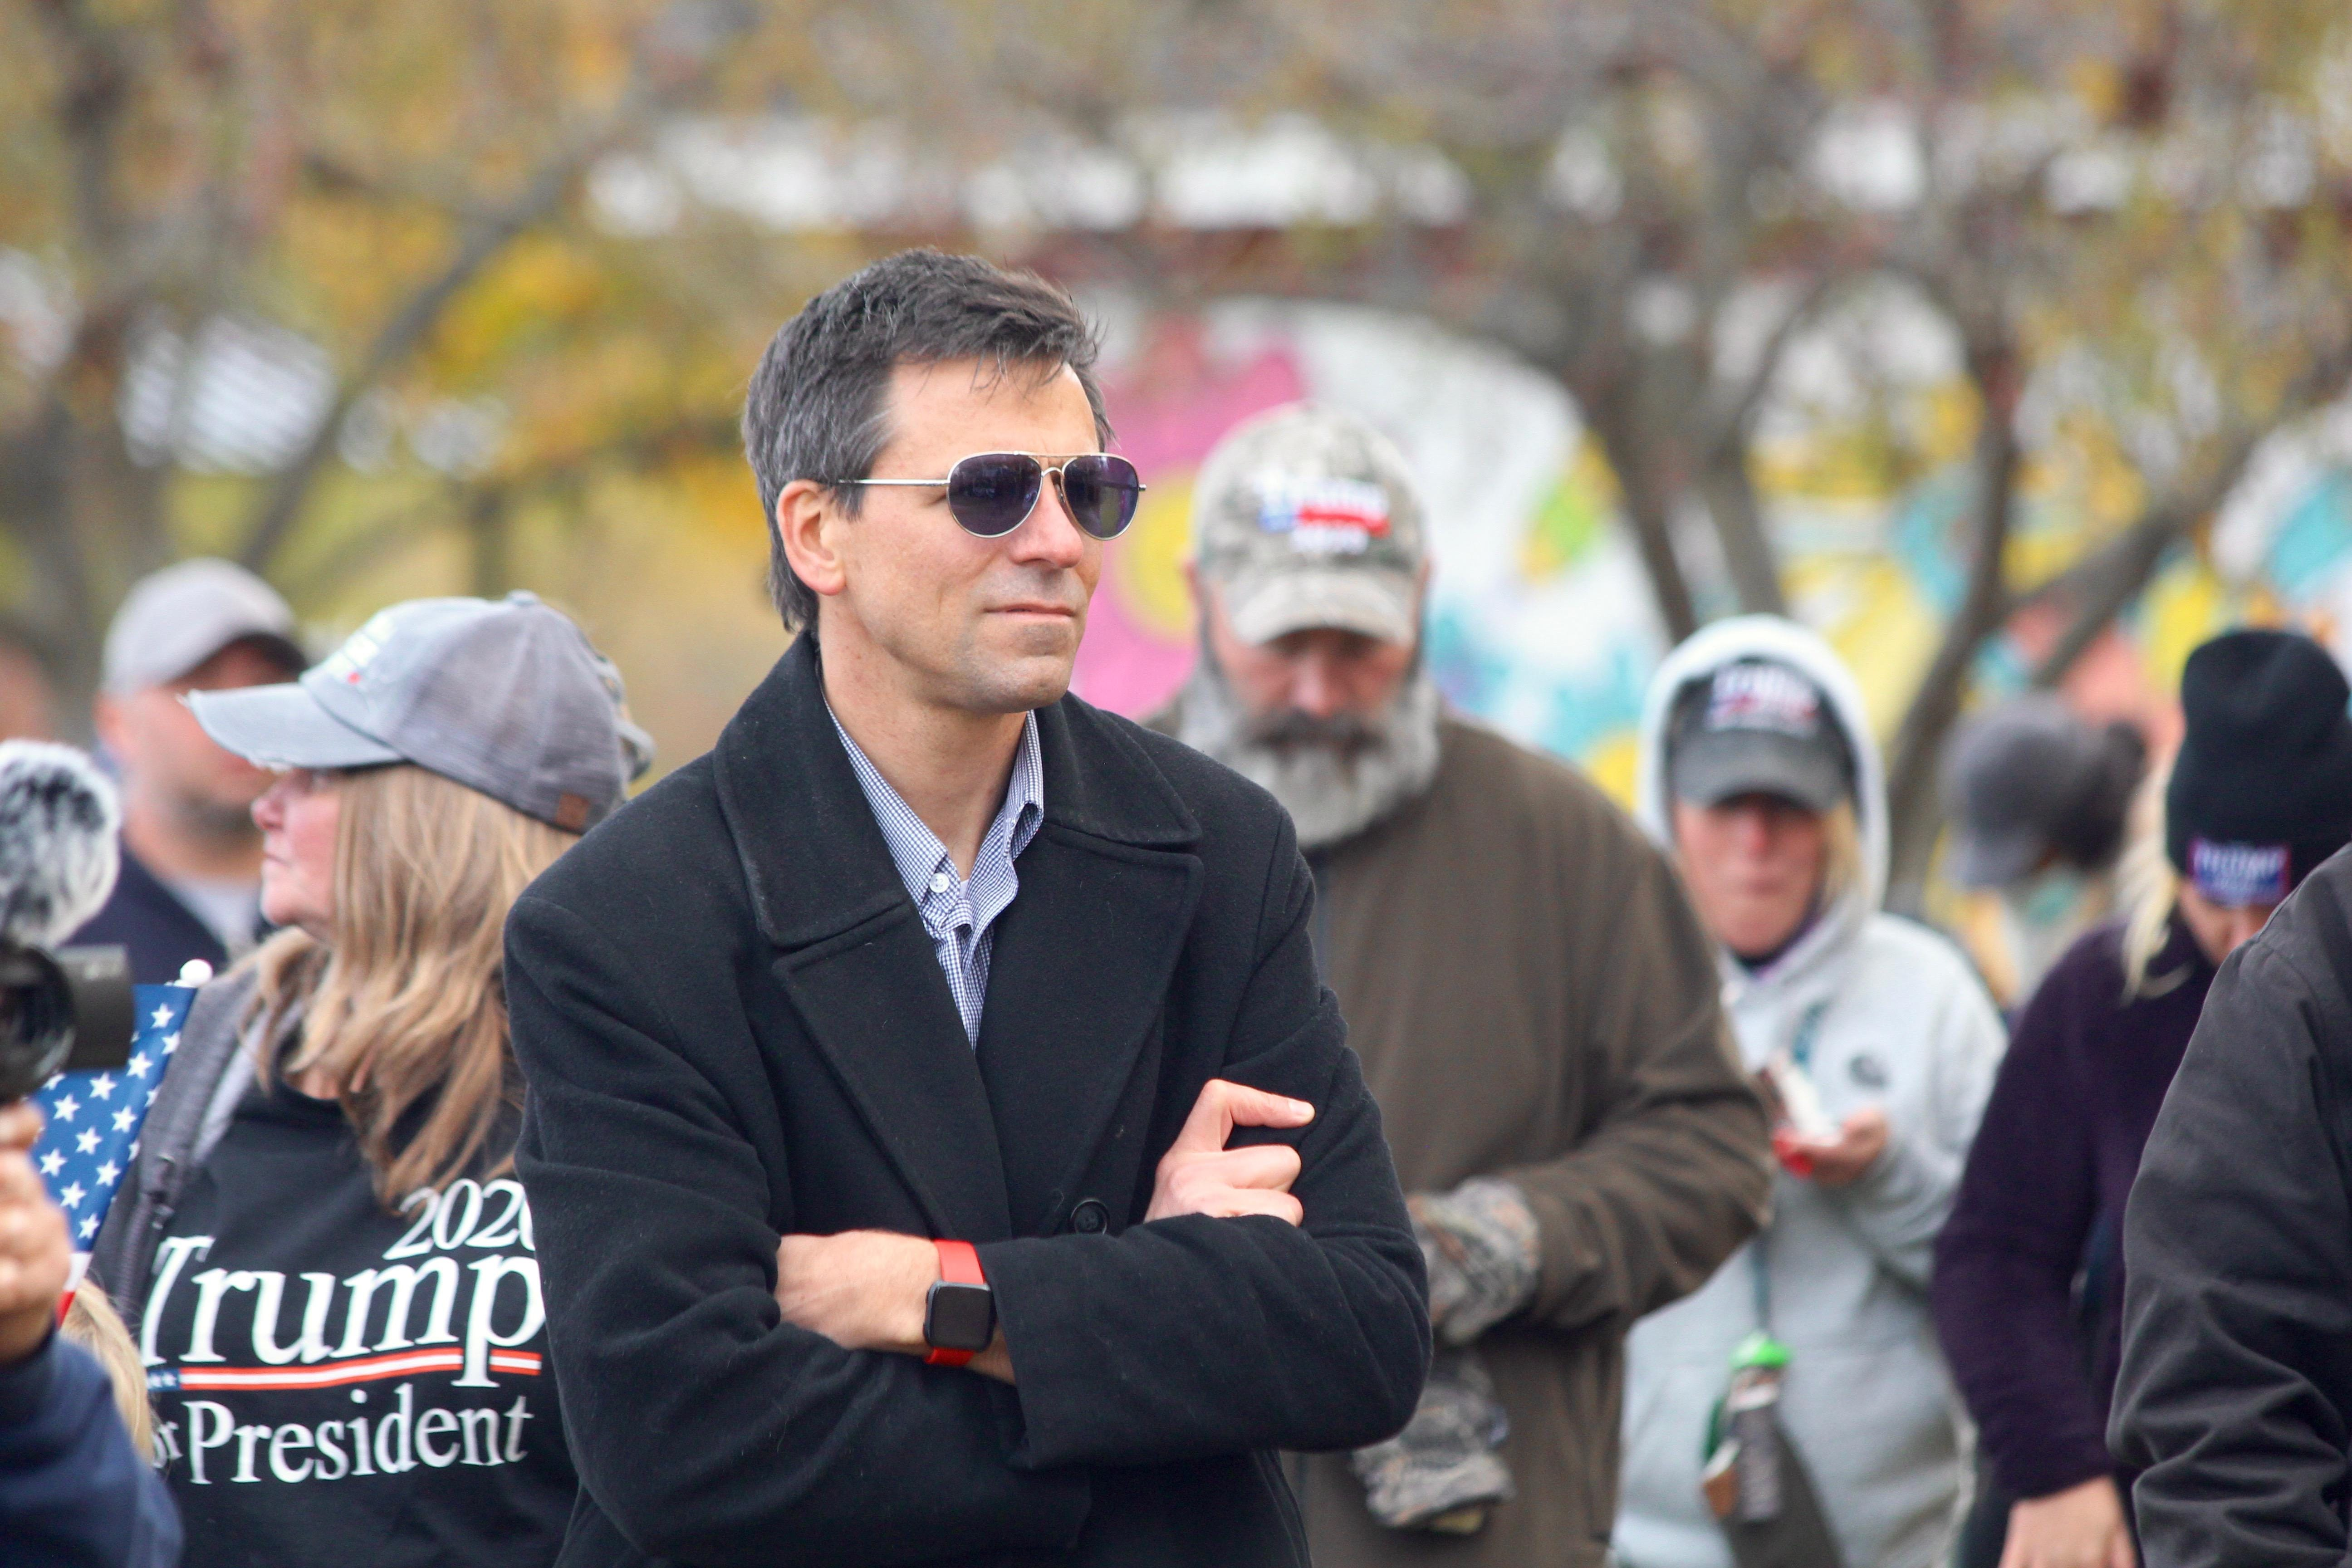 """Ryan Kelley, an Allendale Township planning commissioner, stands during a """"freedom rally"""" in Allendale, Mich., Saturday, Oct. 24, 2020. Kelley has filed paperwork to form a gubernatorial committee, one of the first steps in running for governor."""